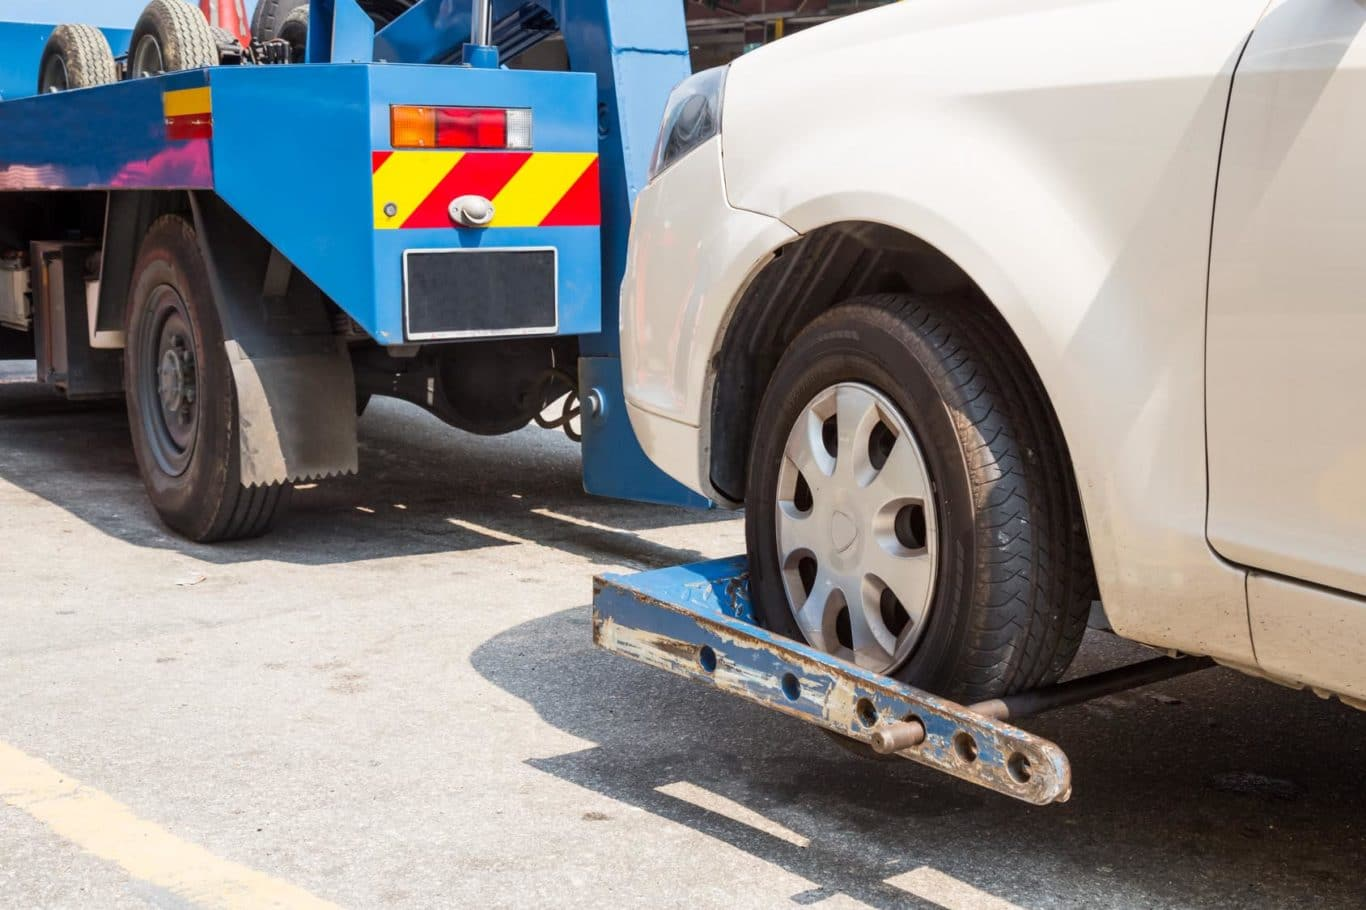 Julianstown expert Car Recovery services